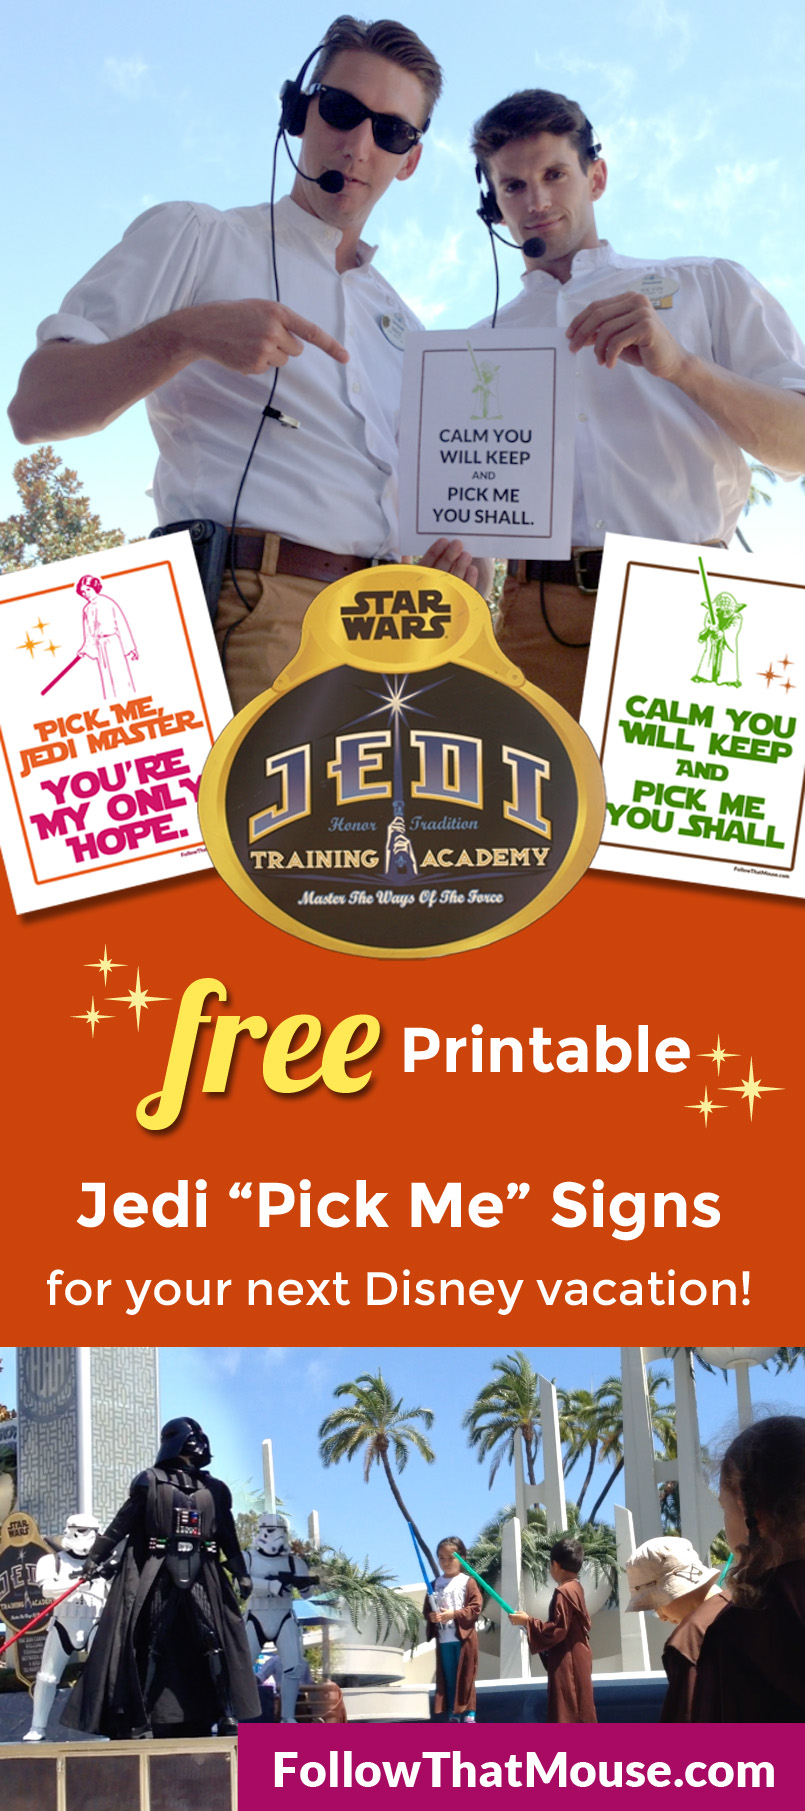 Jedi Training Academy Printable Pick Me Signs for Disneyland